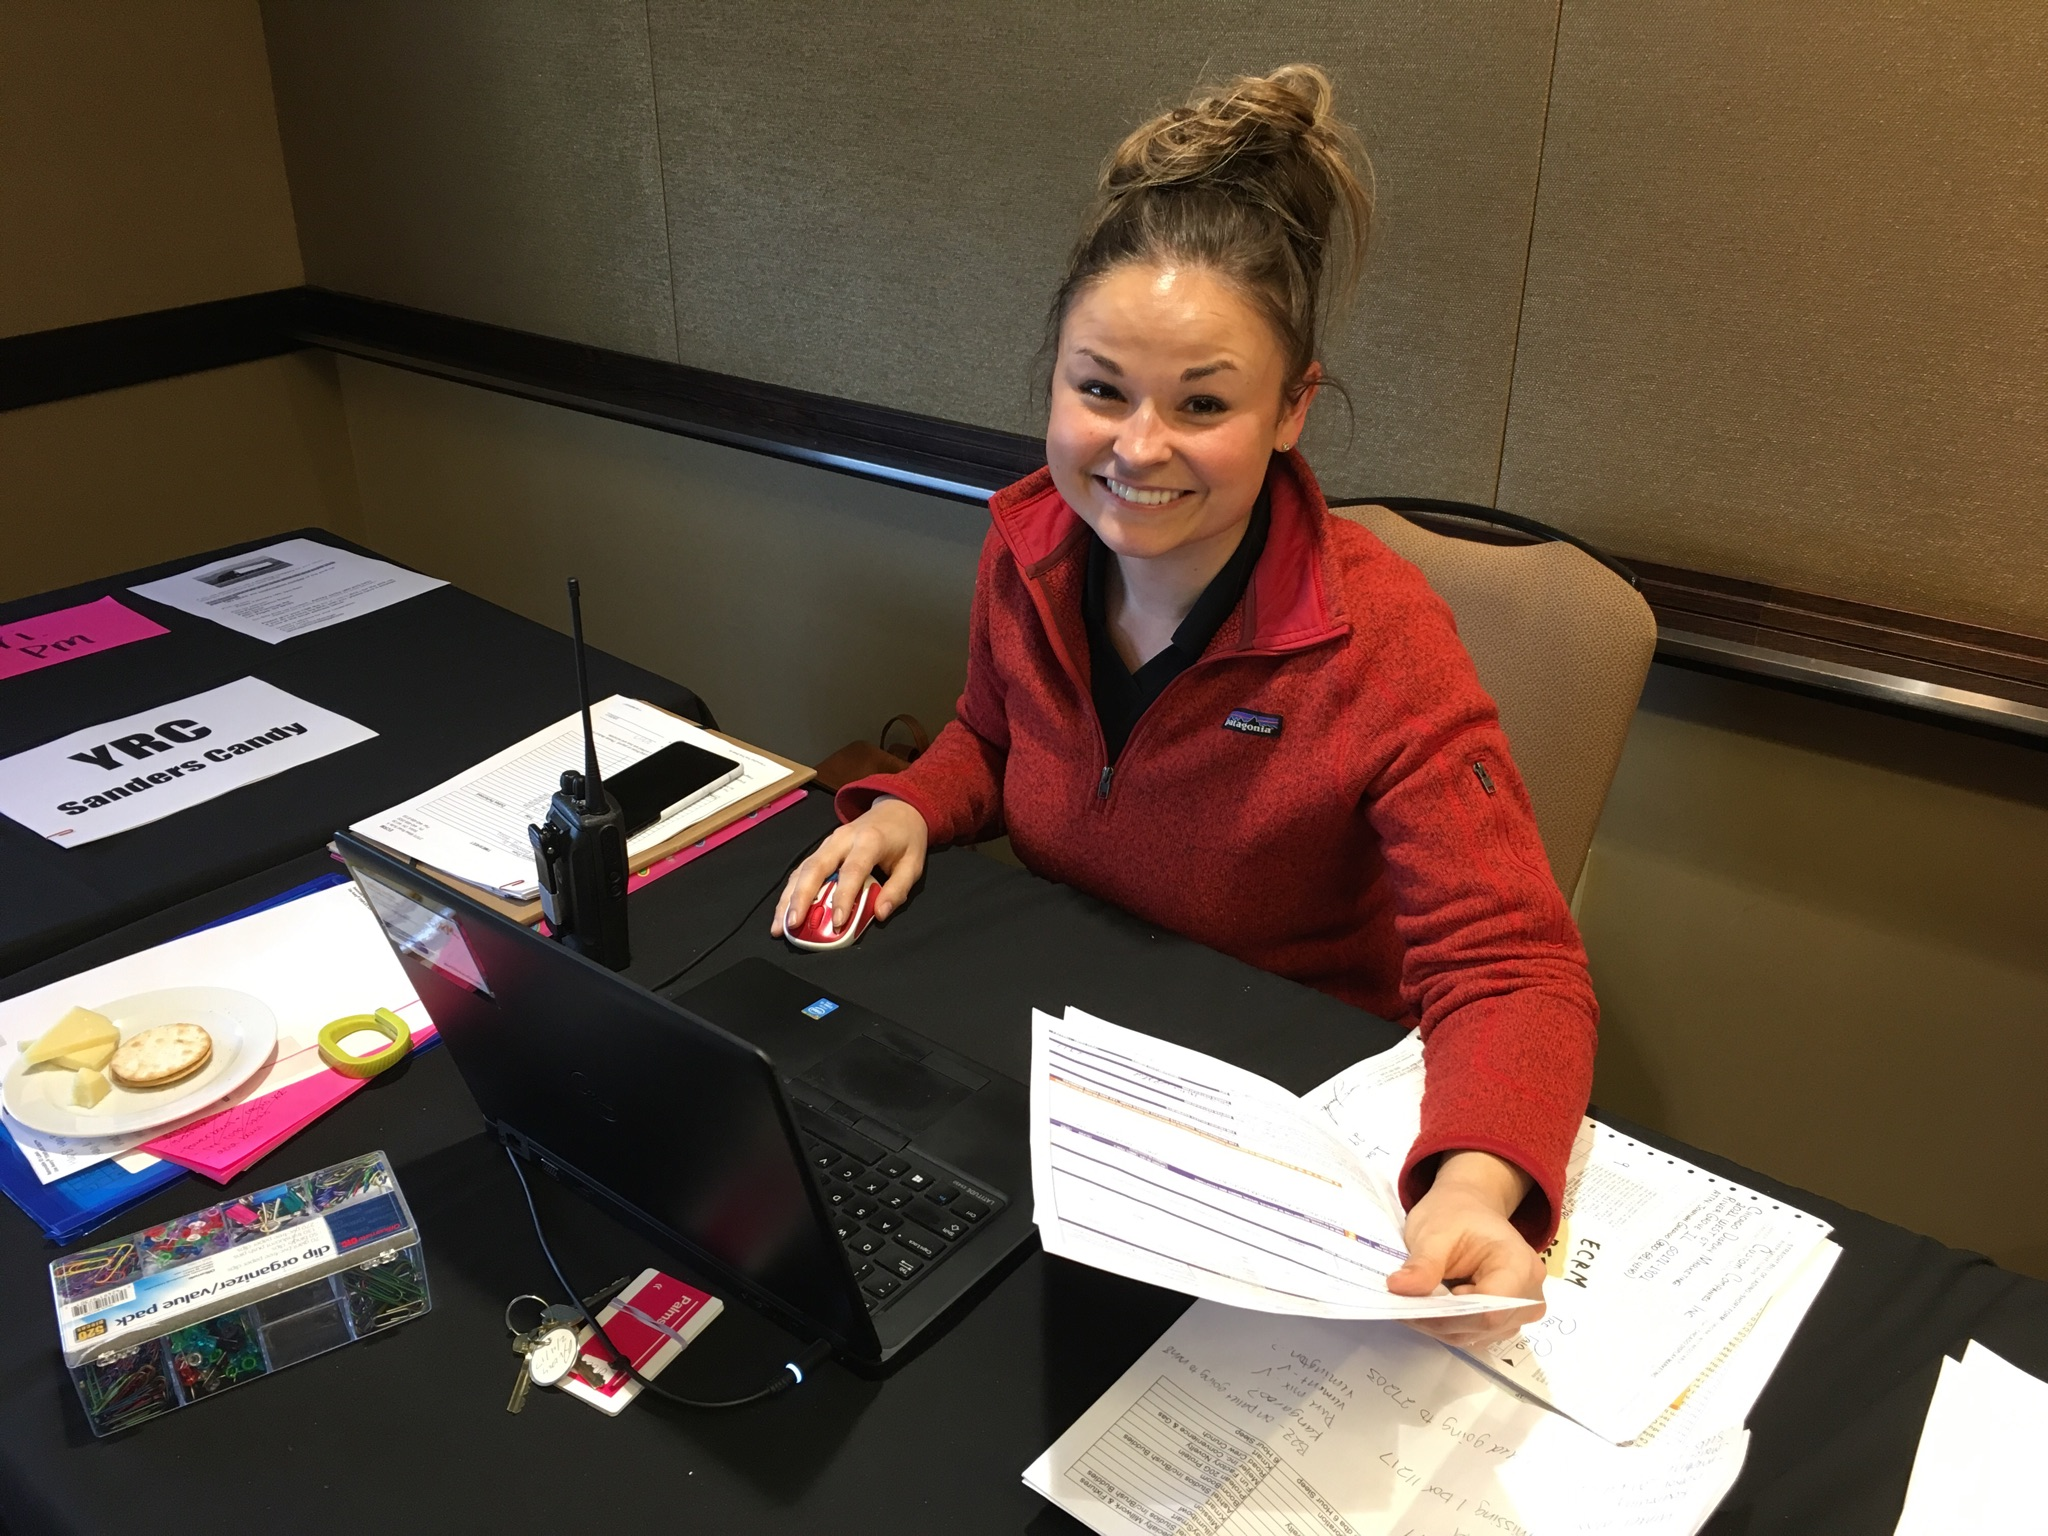 EPPS Freight Manager Ashley Jenks at ECRM's Candy Planning EPPS